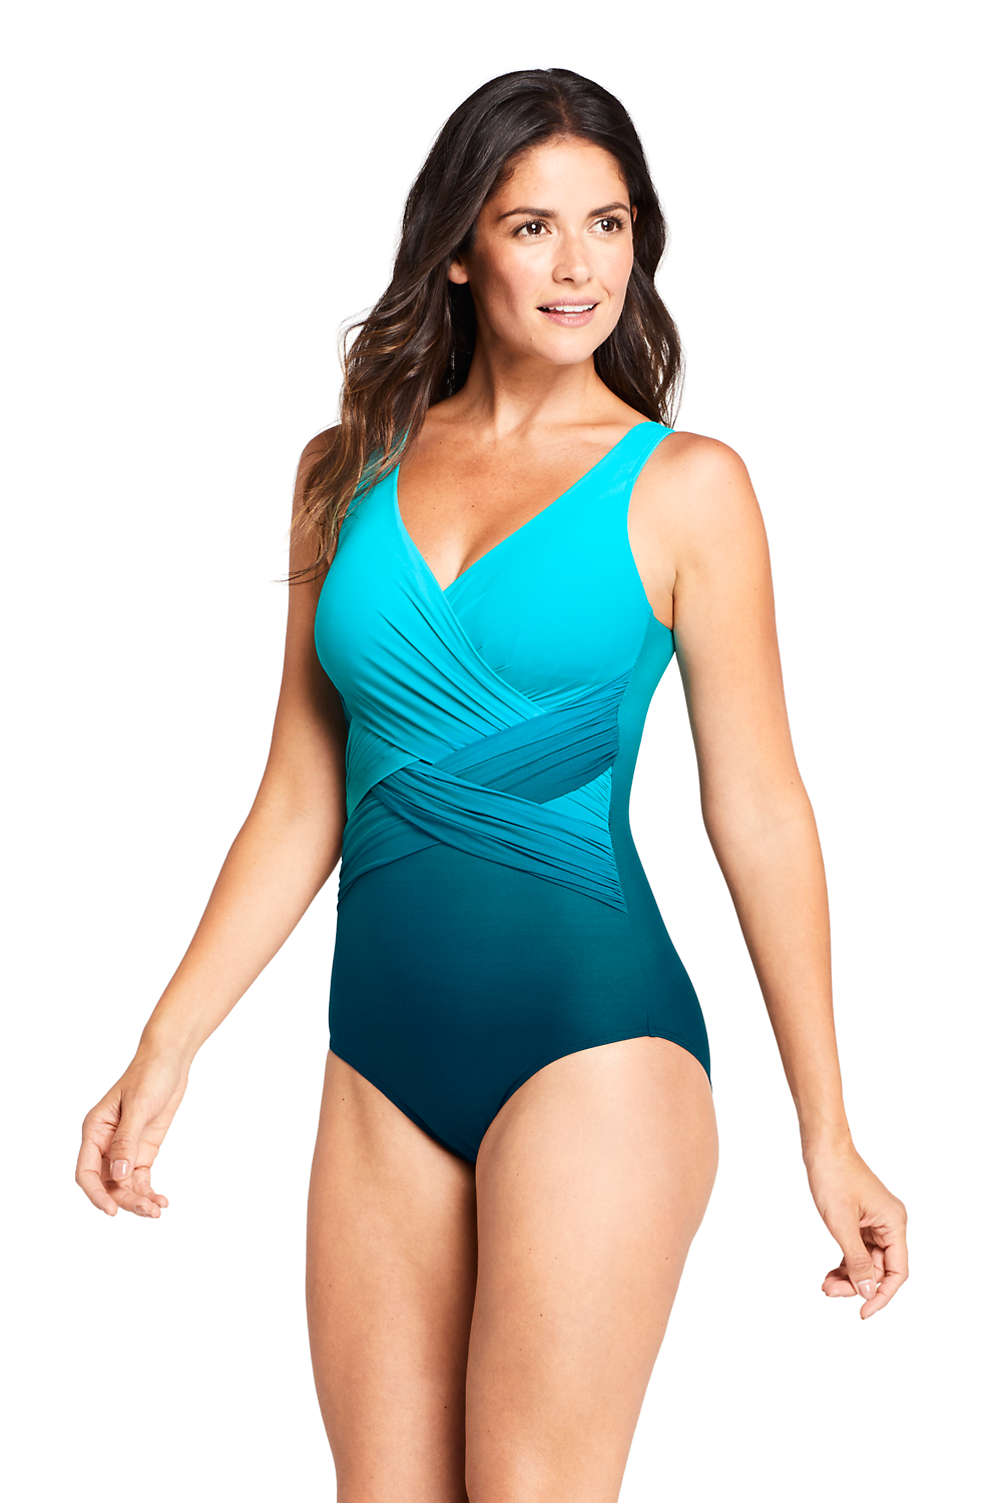 7843957e8 Women's Slender Wrap One Piece Swimsuit with Tummy Control Print from  Lands' End